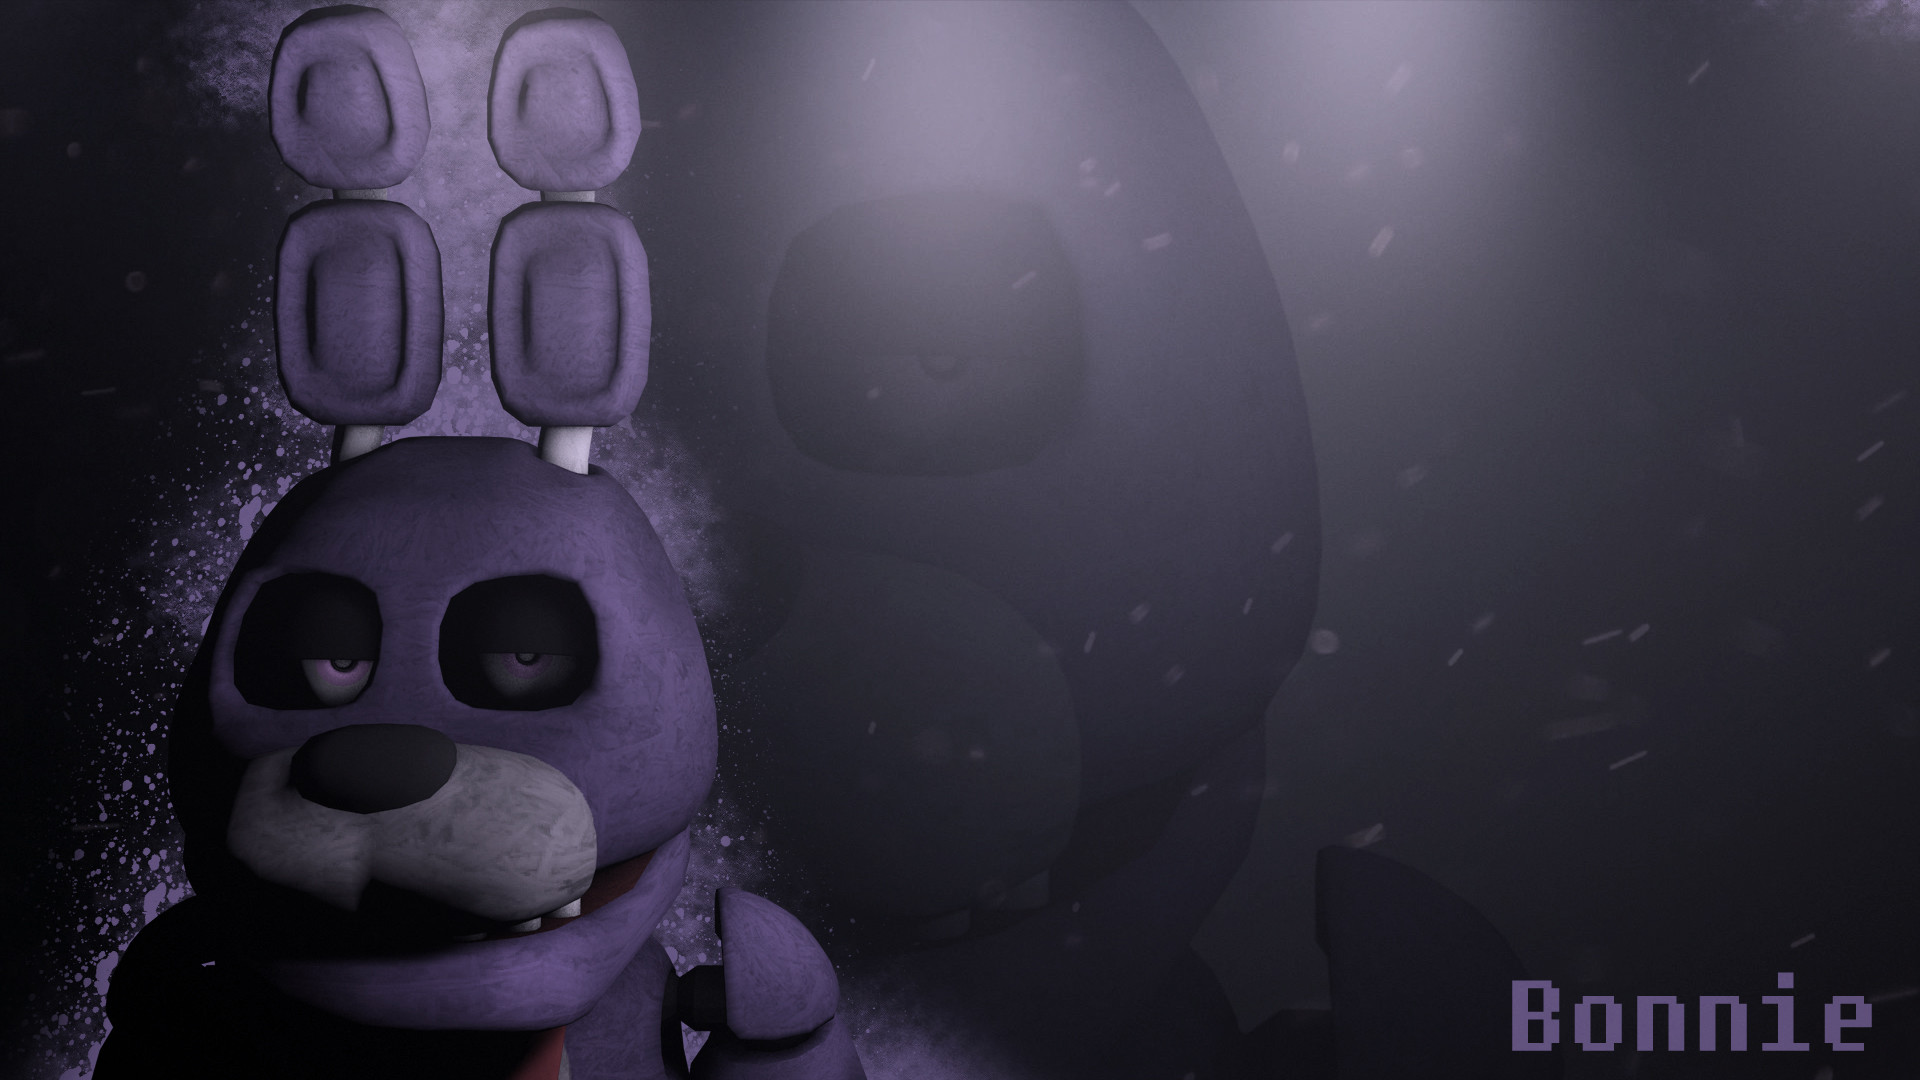 1920x1080 ... Five Nights at Freddy's Bonnie Wallpaper DOWNLOAD by NiksonYT